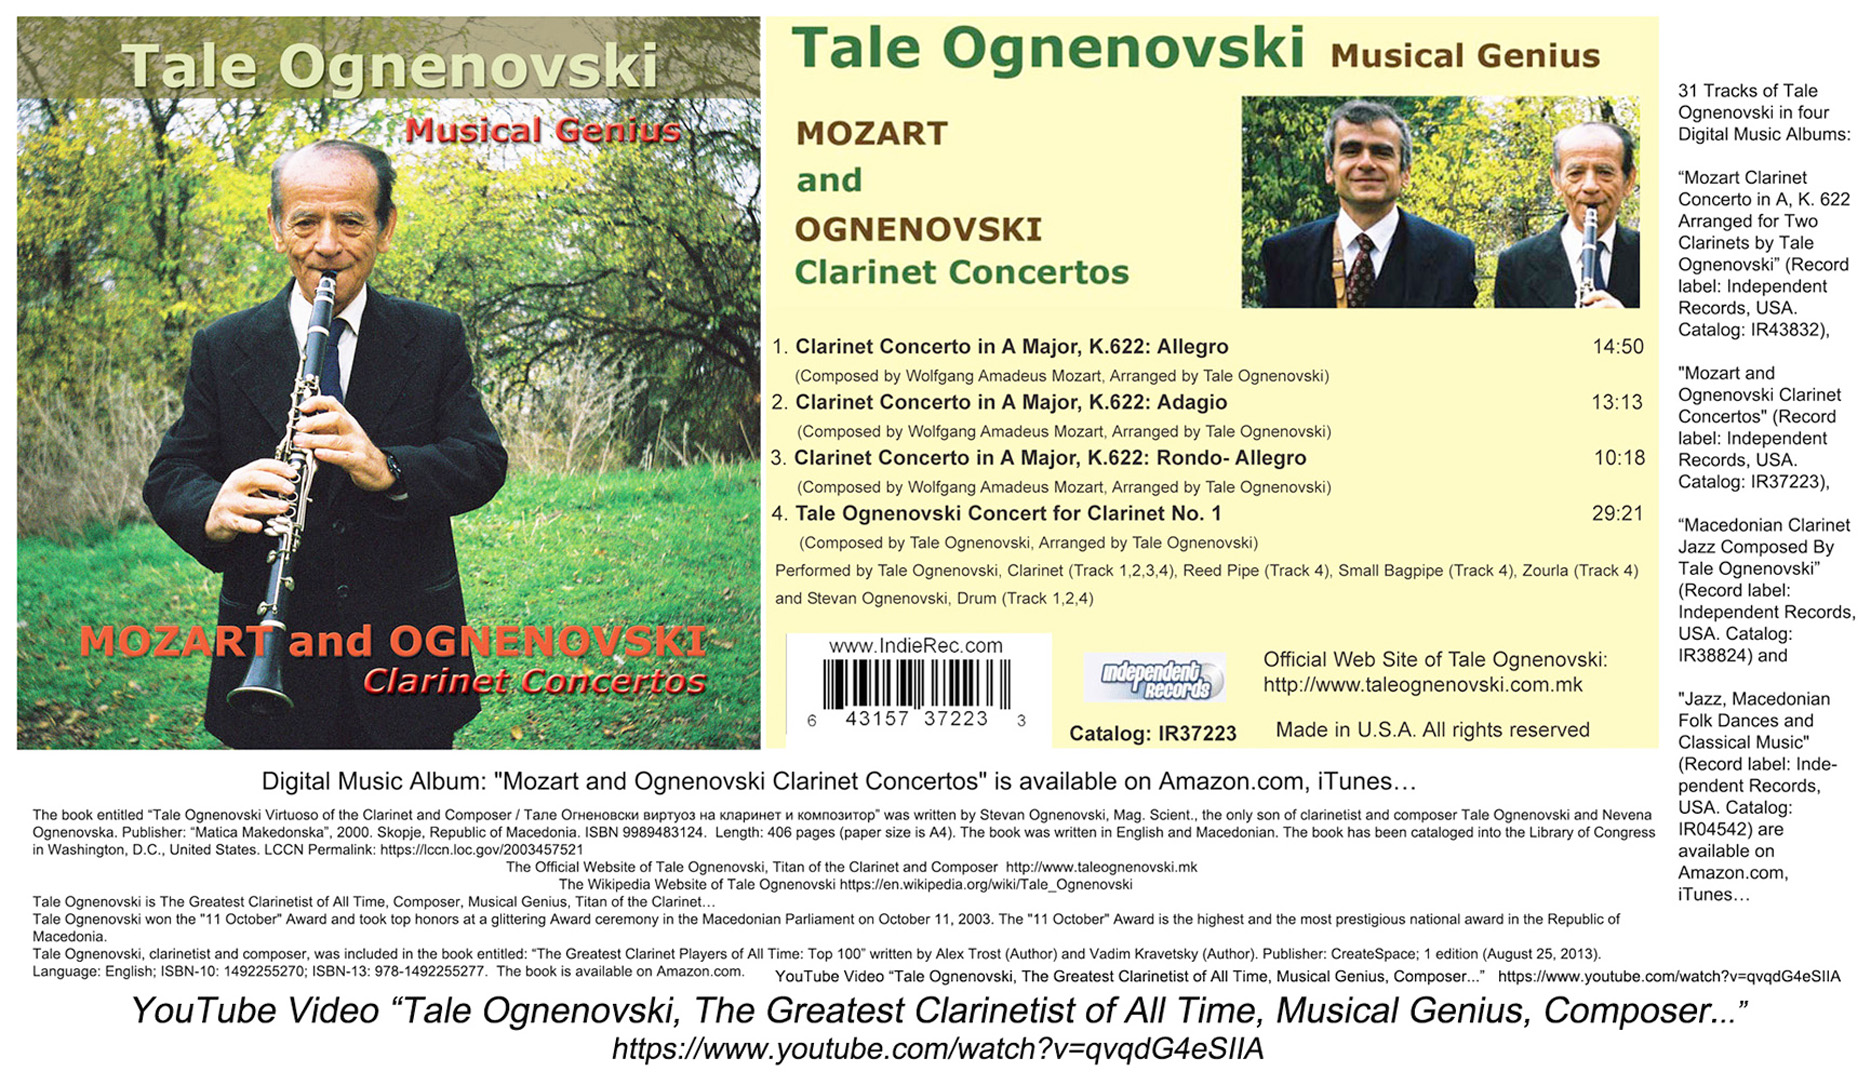 Tale Ognenovski, The Greatest Clarinetist of All Time